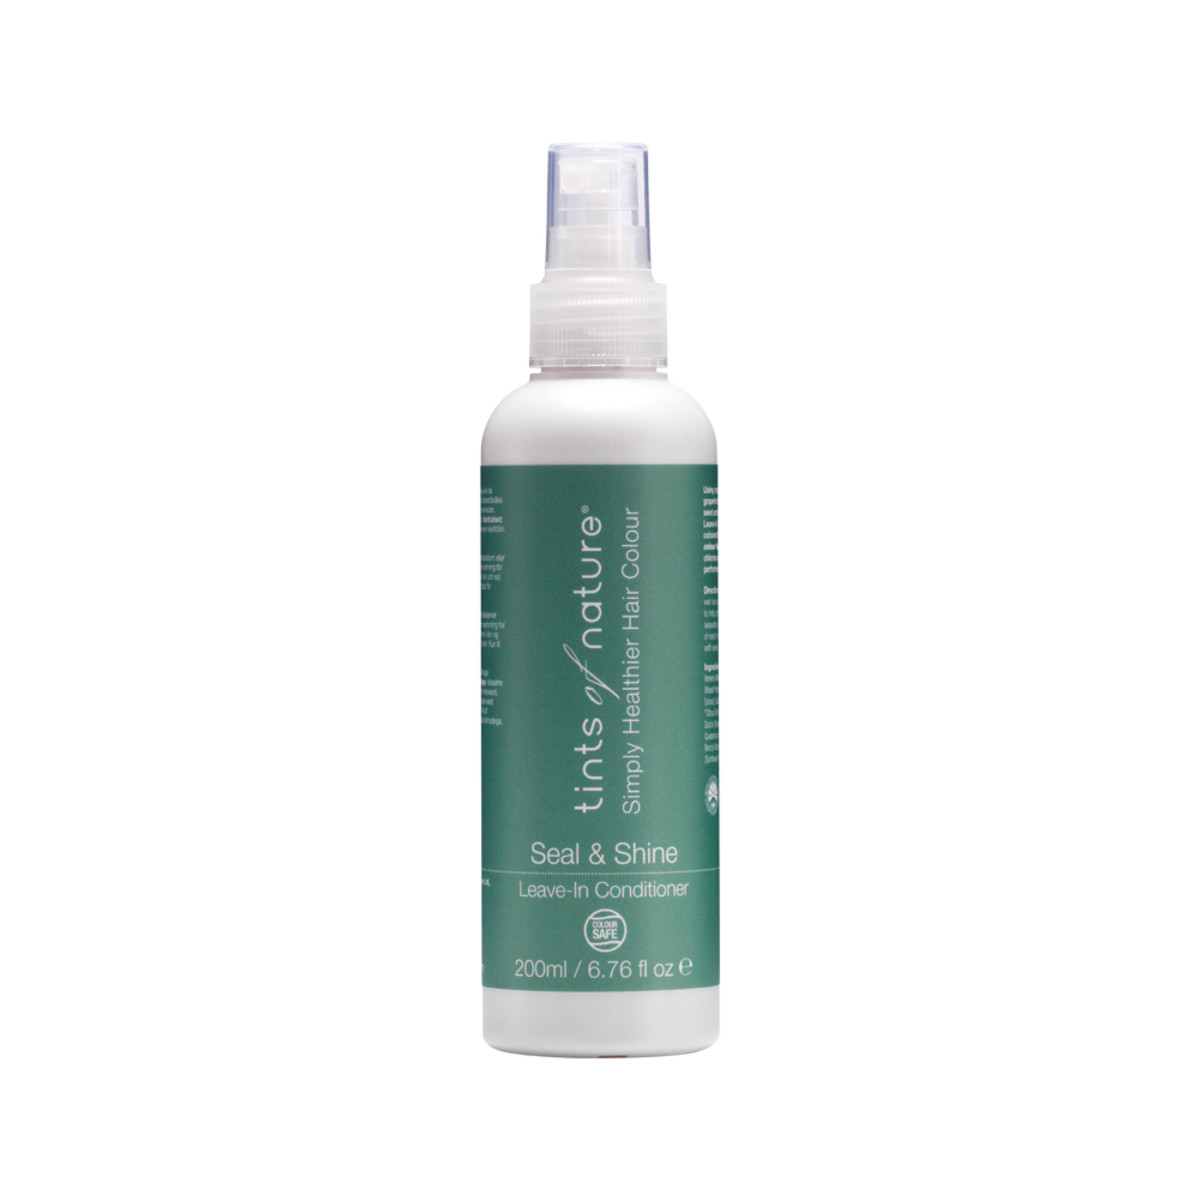 TINTS OF NATURE Seal & Shine Conditioner 200ml